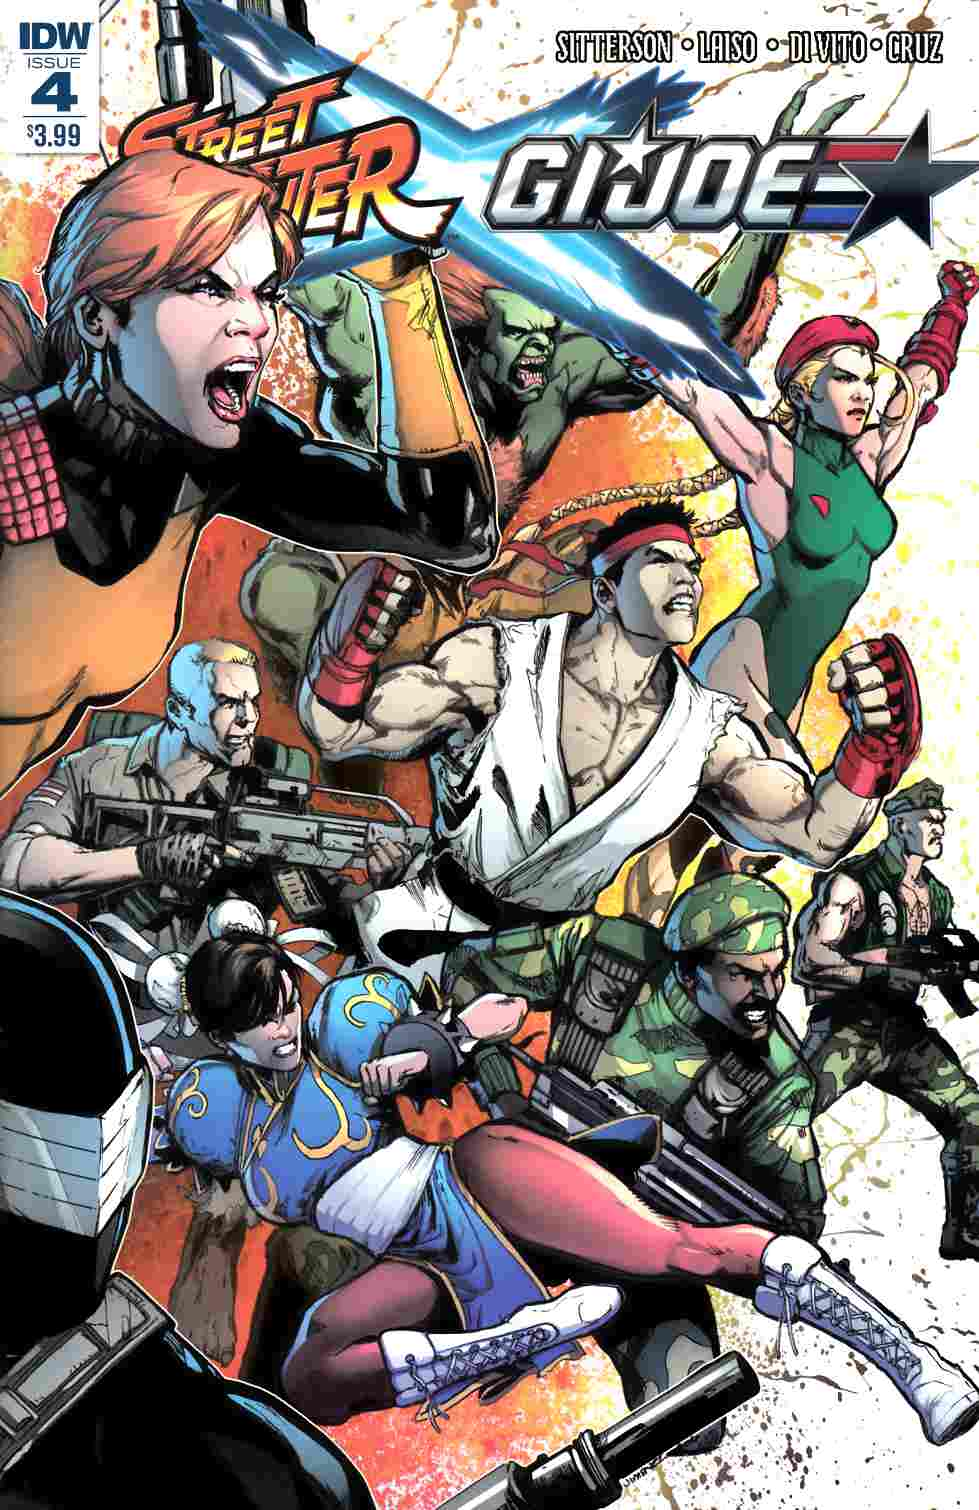 Street Fighter x GI Joe #4 [IDW Comic] LARGE